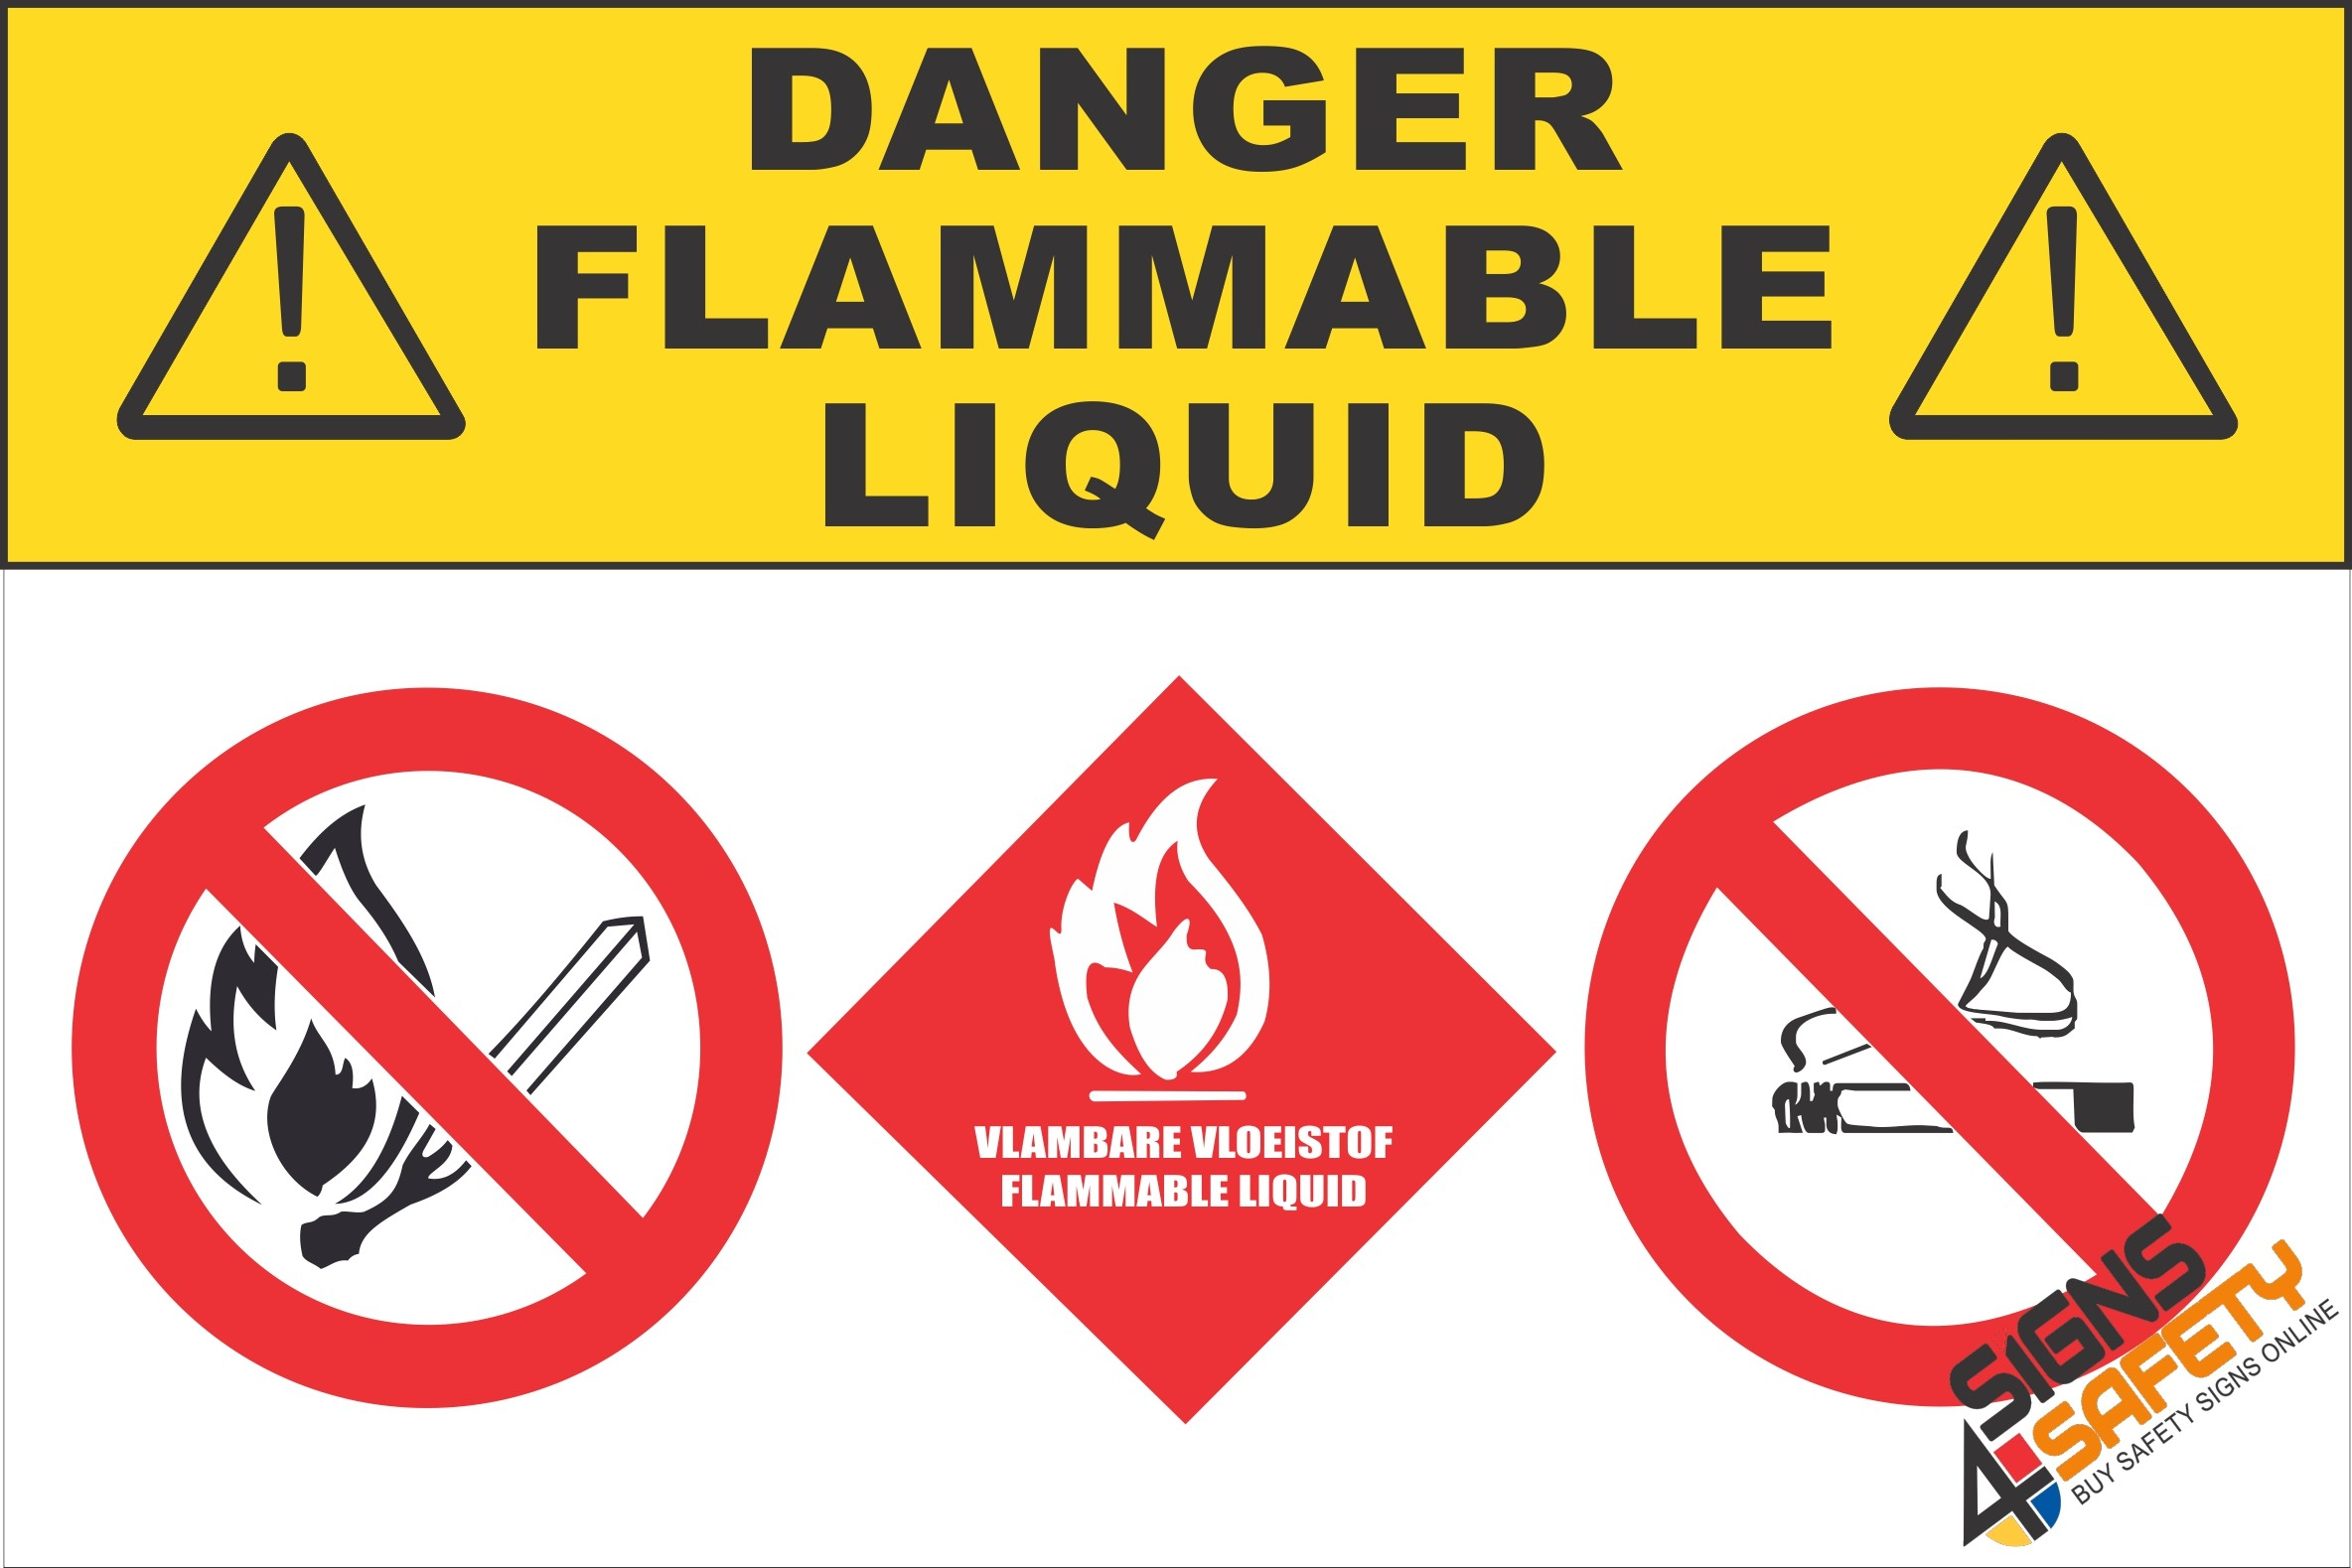 Nosa sabs gas safety signs south africa signs4safety g20 danger flammable liquids sign buycottarizona